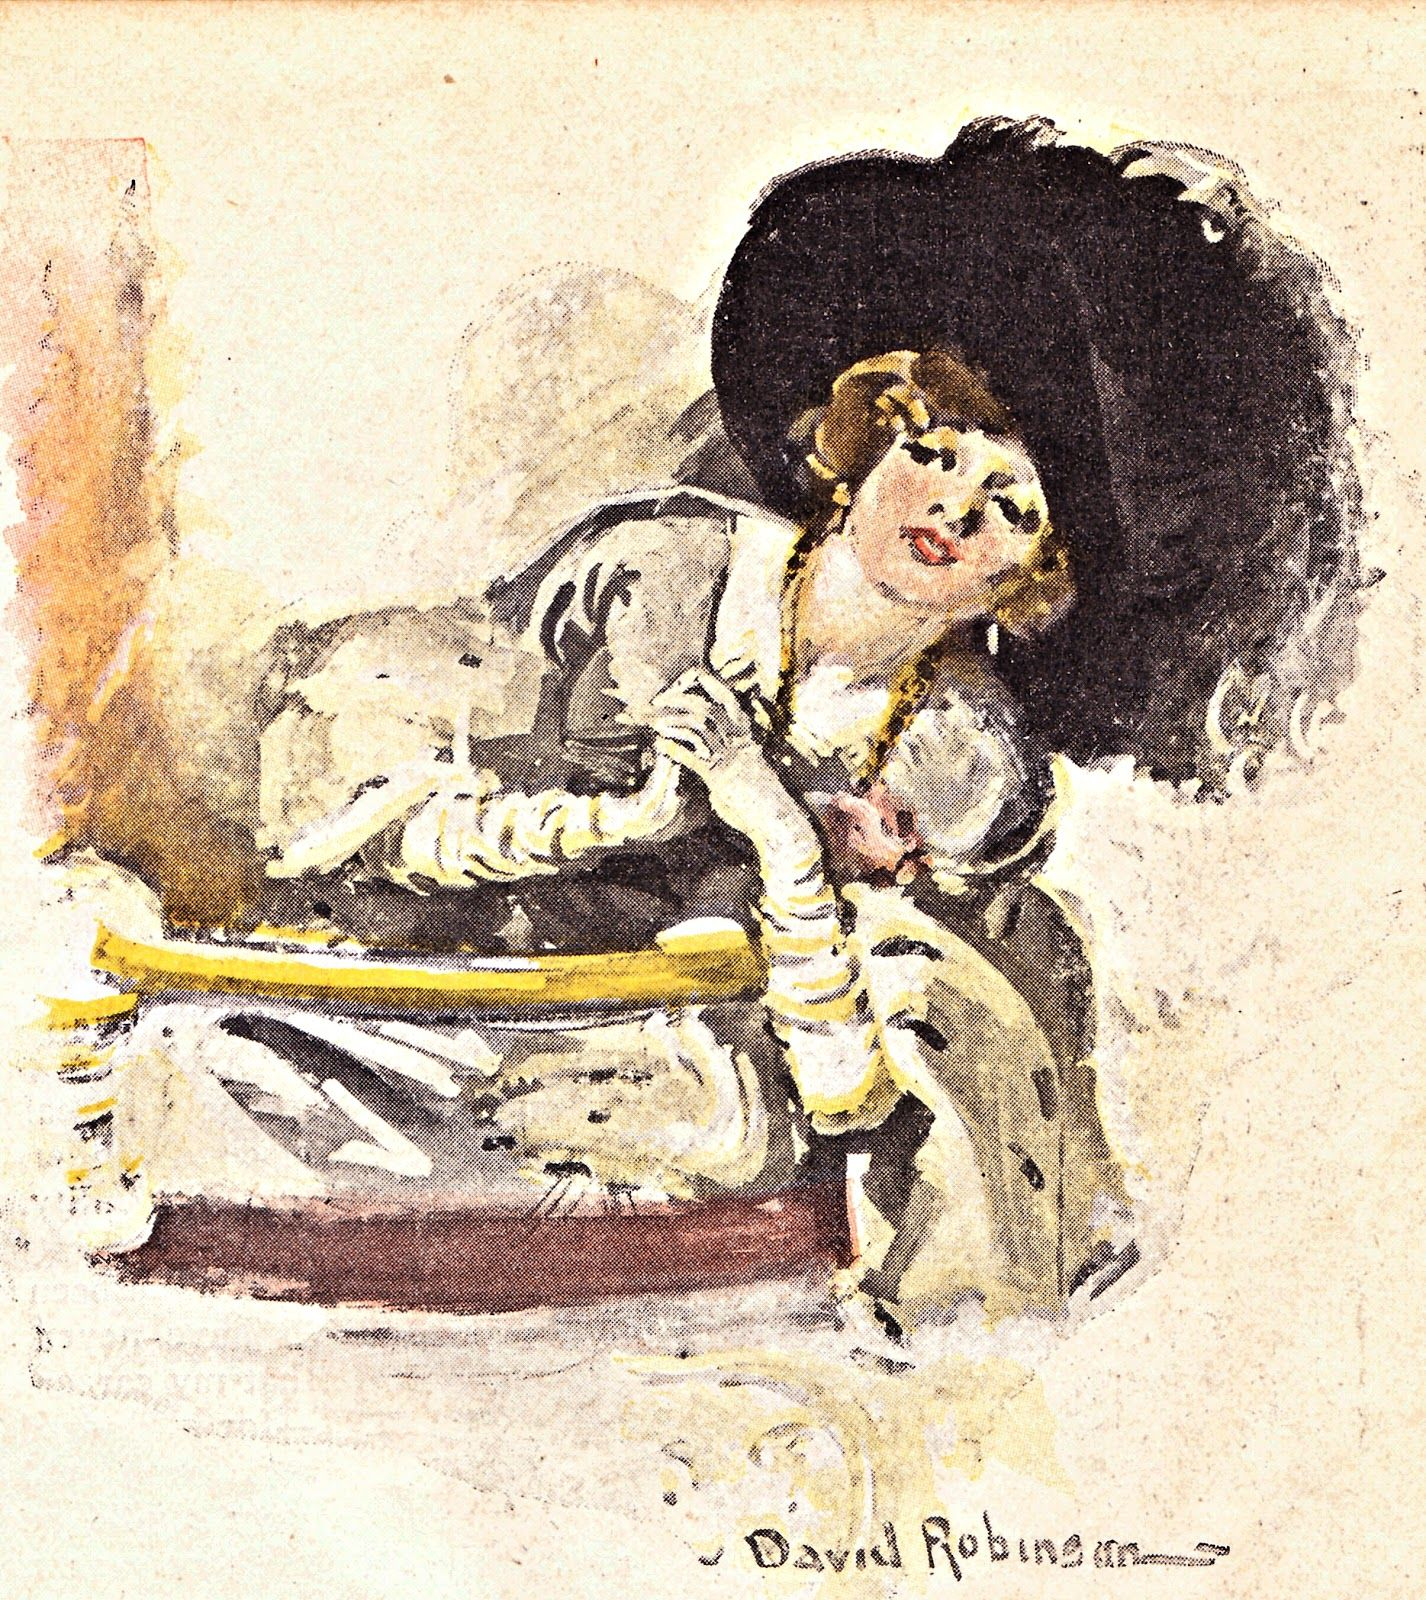 Boulevard de L'antique:  Free Images of the Day: Vintage Illustrations from a 1912 Magazine